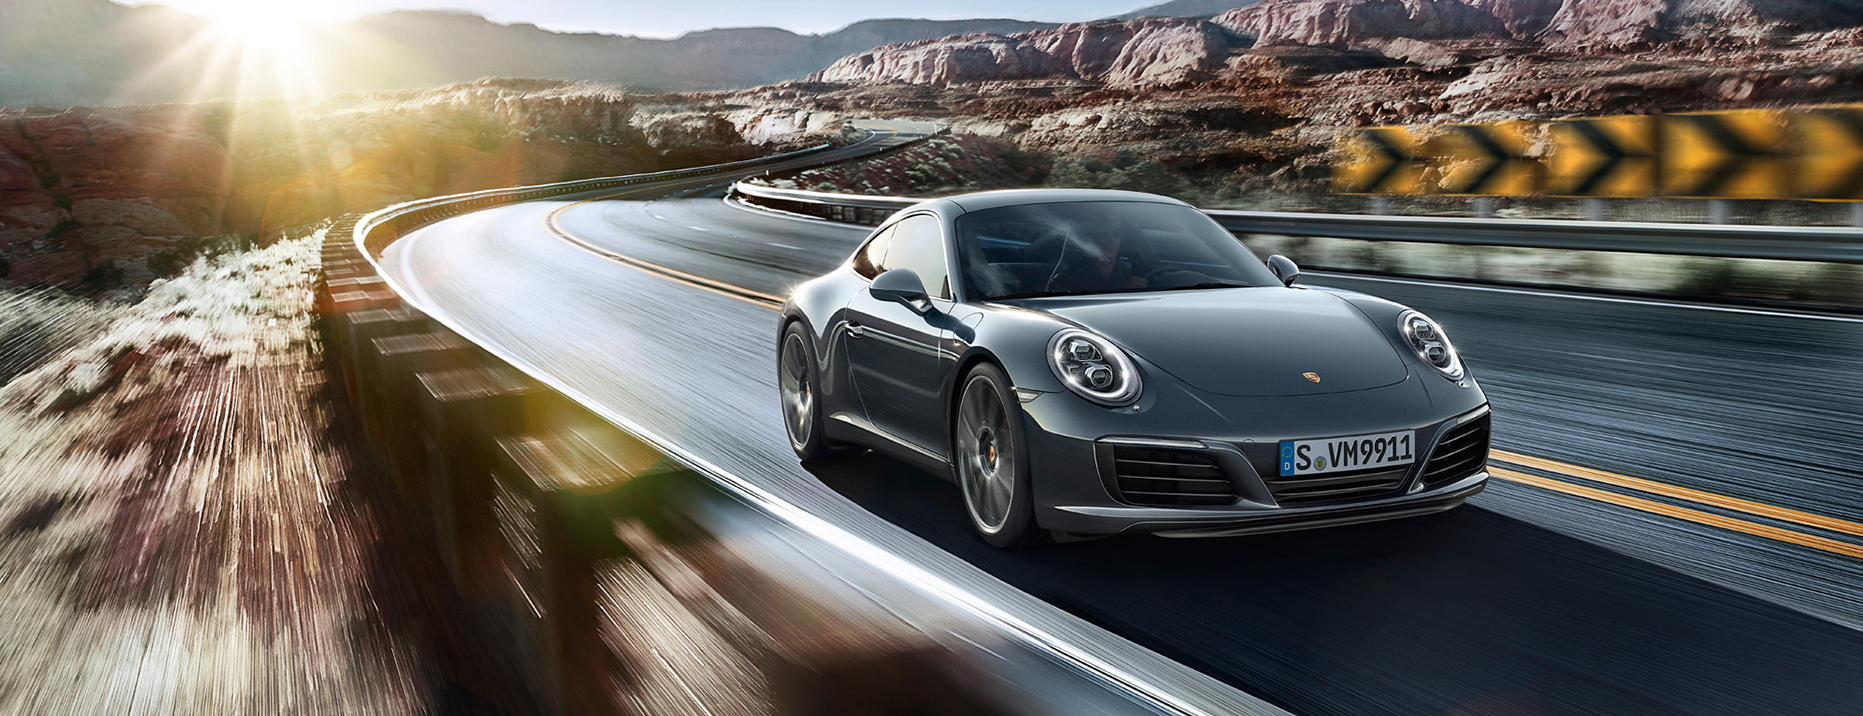 Carsales Best Performance Car Over $100K 2017. 911 Carrera.